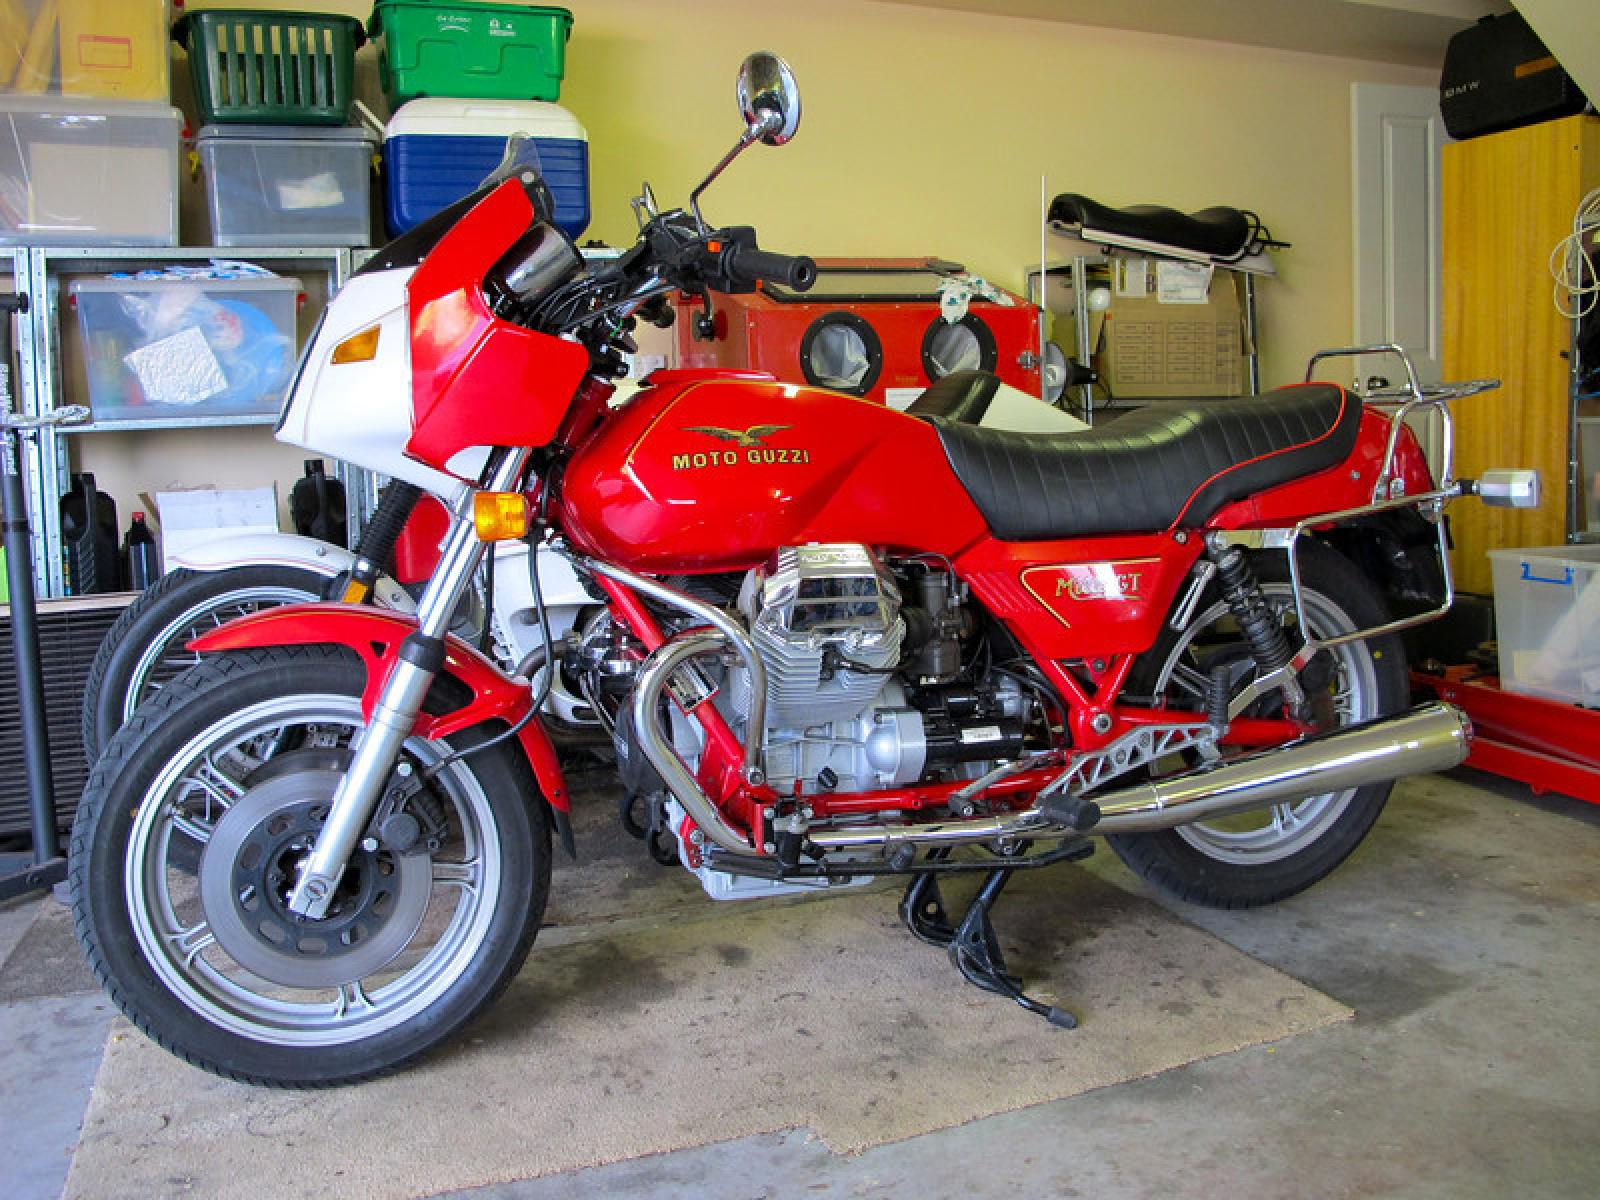 1987 Moto Guzzi Mille GT (reduced effect) #2